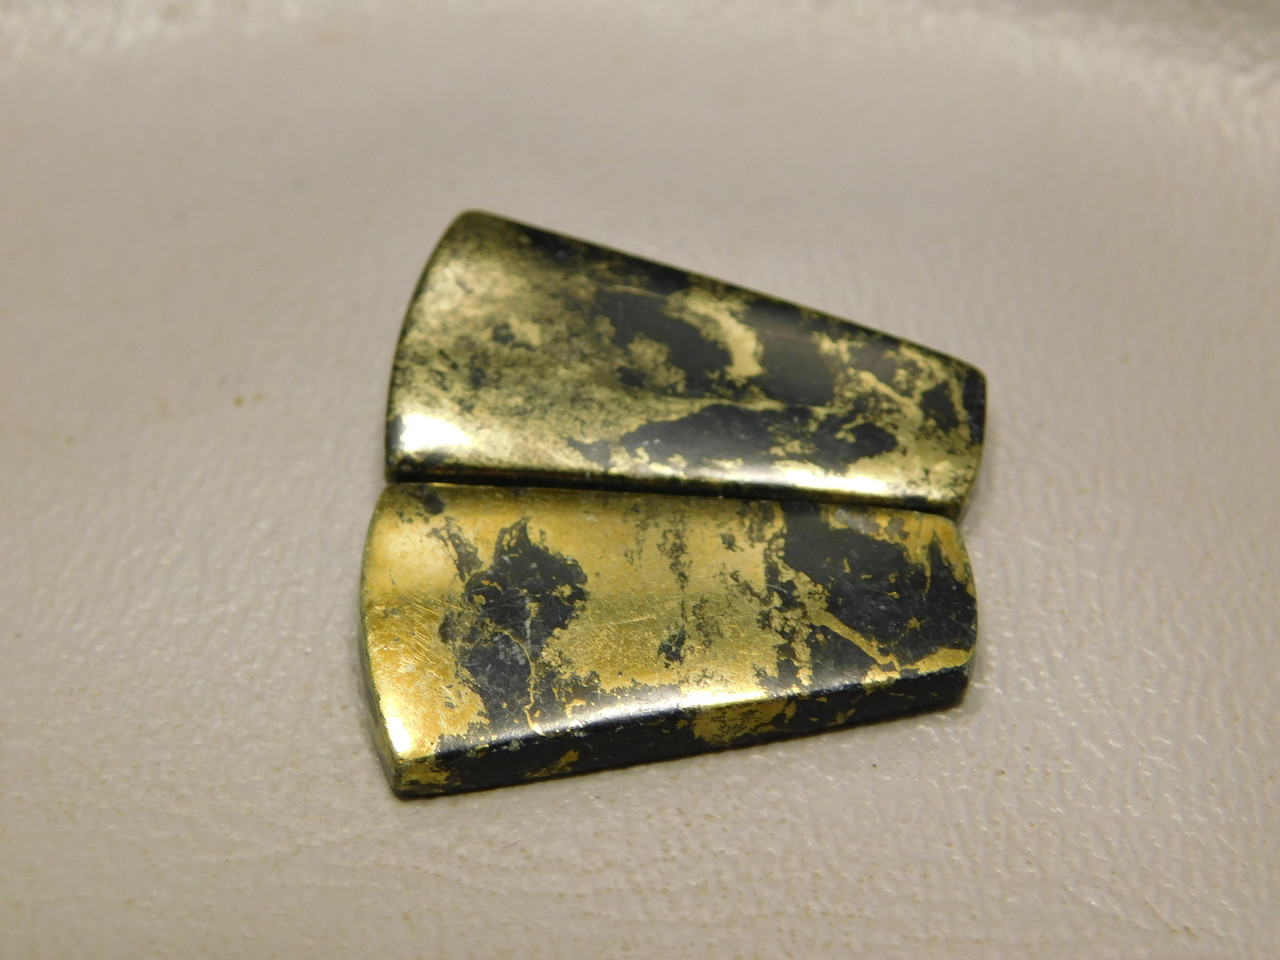 Apache Gold Matched Pair Cabochons Black Stones Trapezoid #6